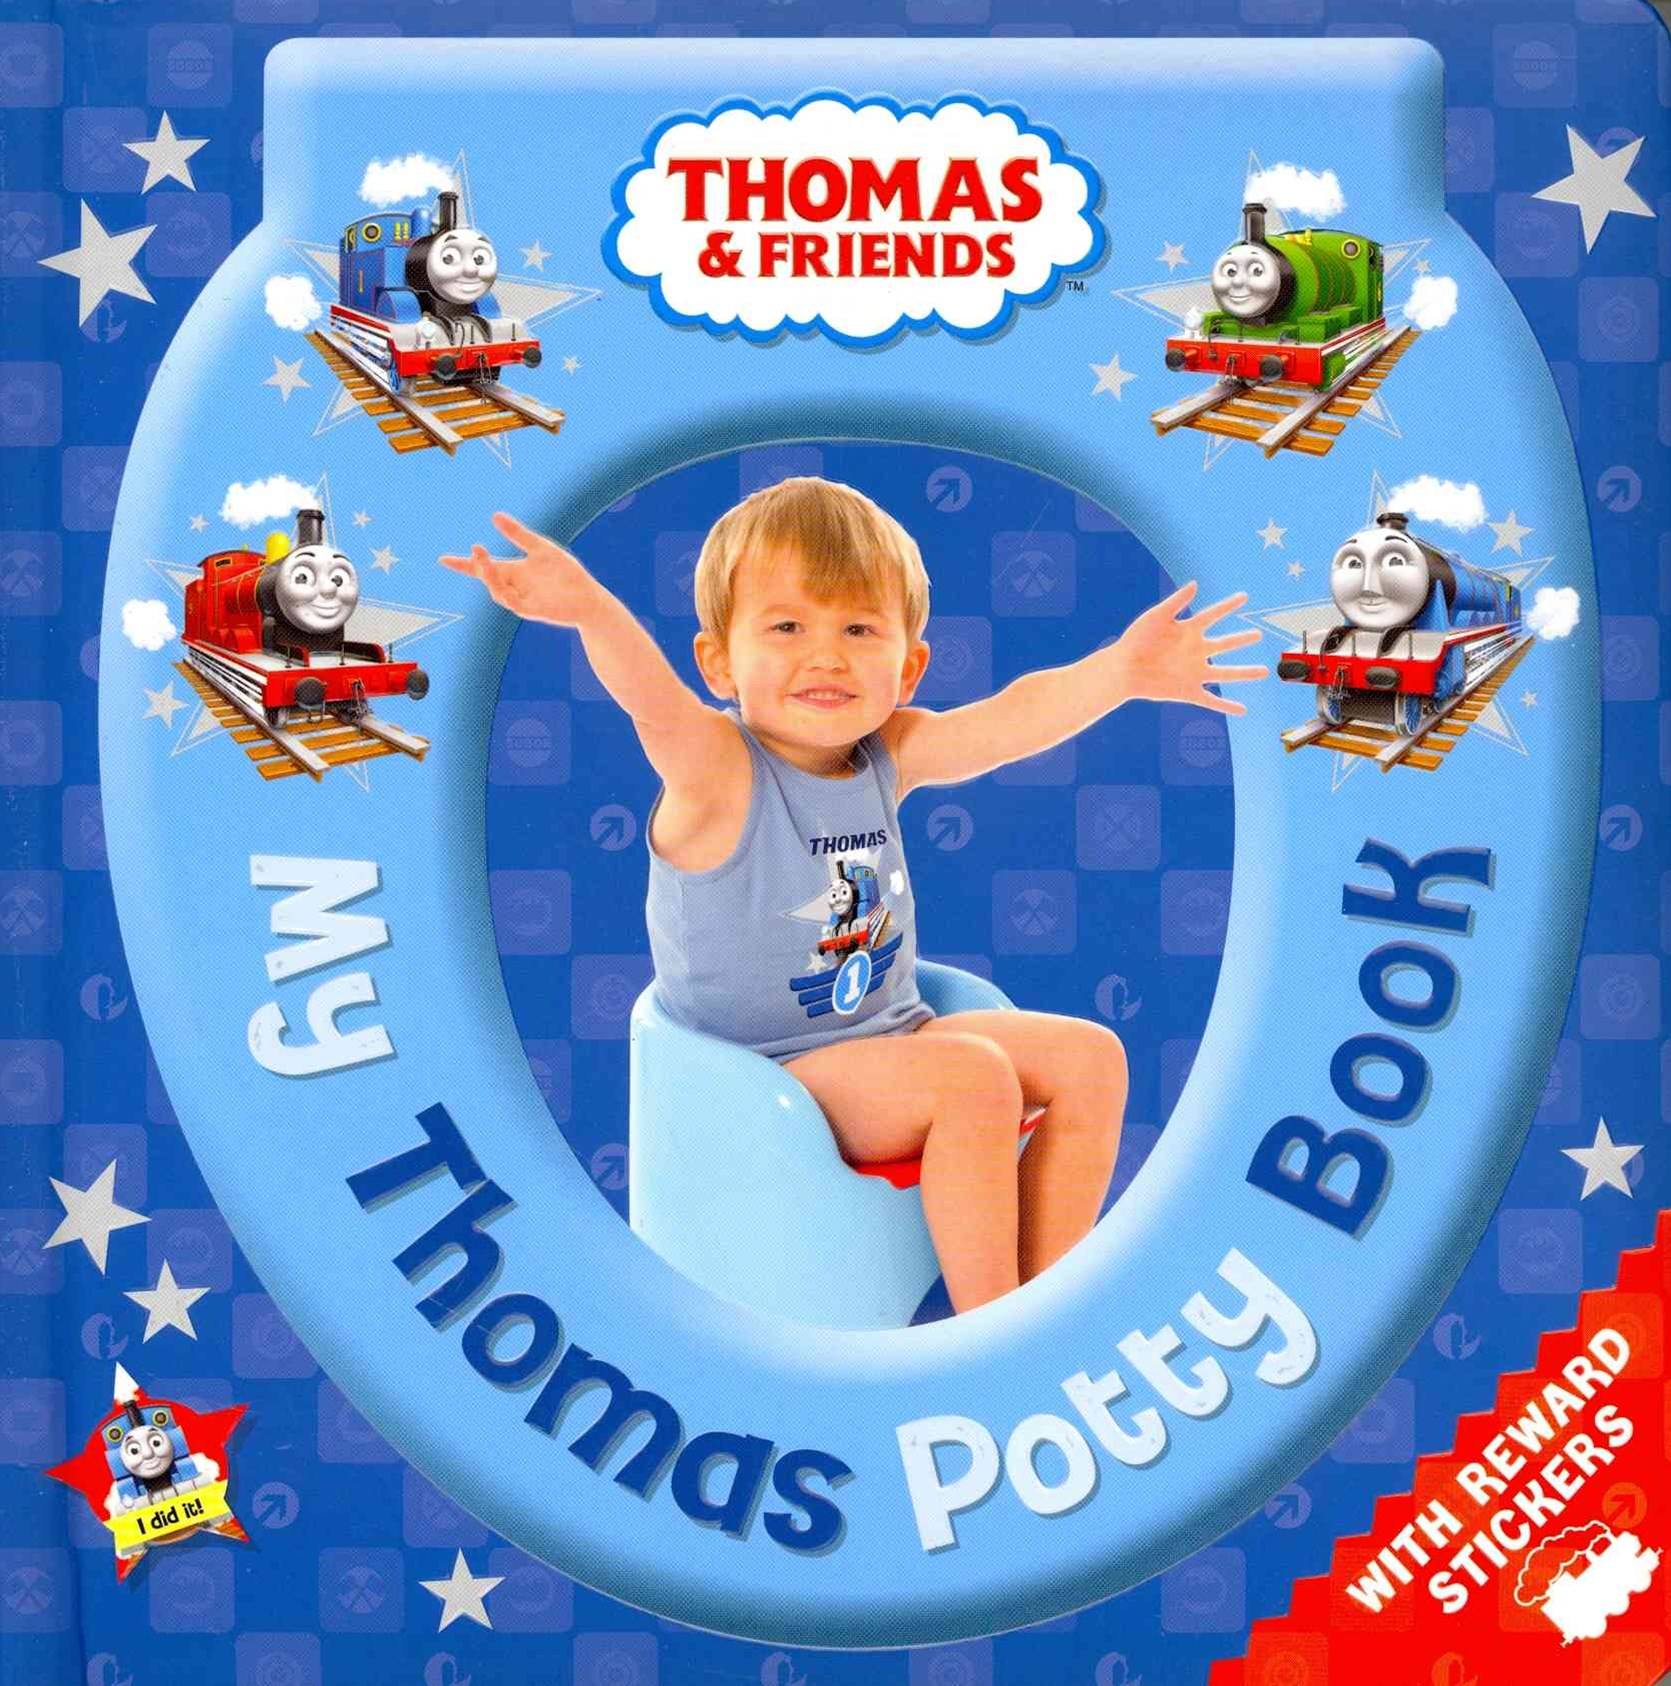 Thomas & Friends My Thomas Potty Book